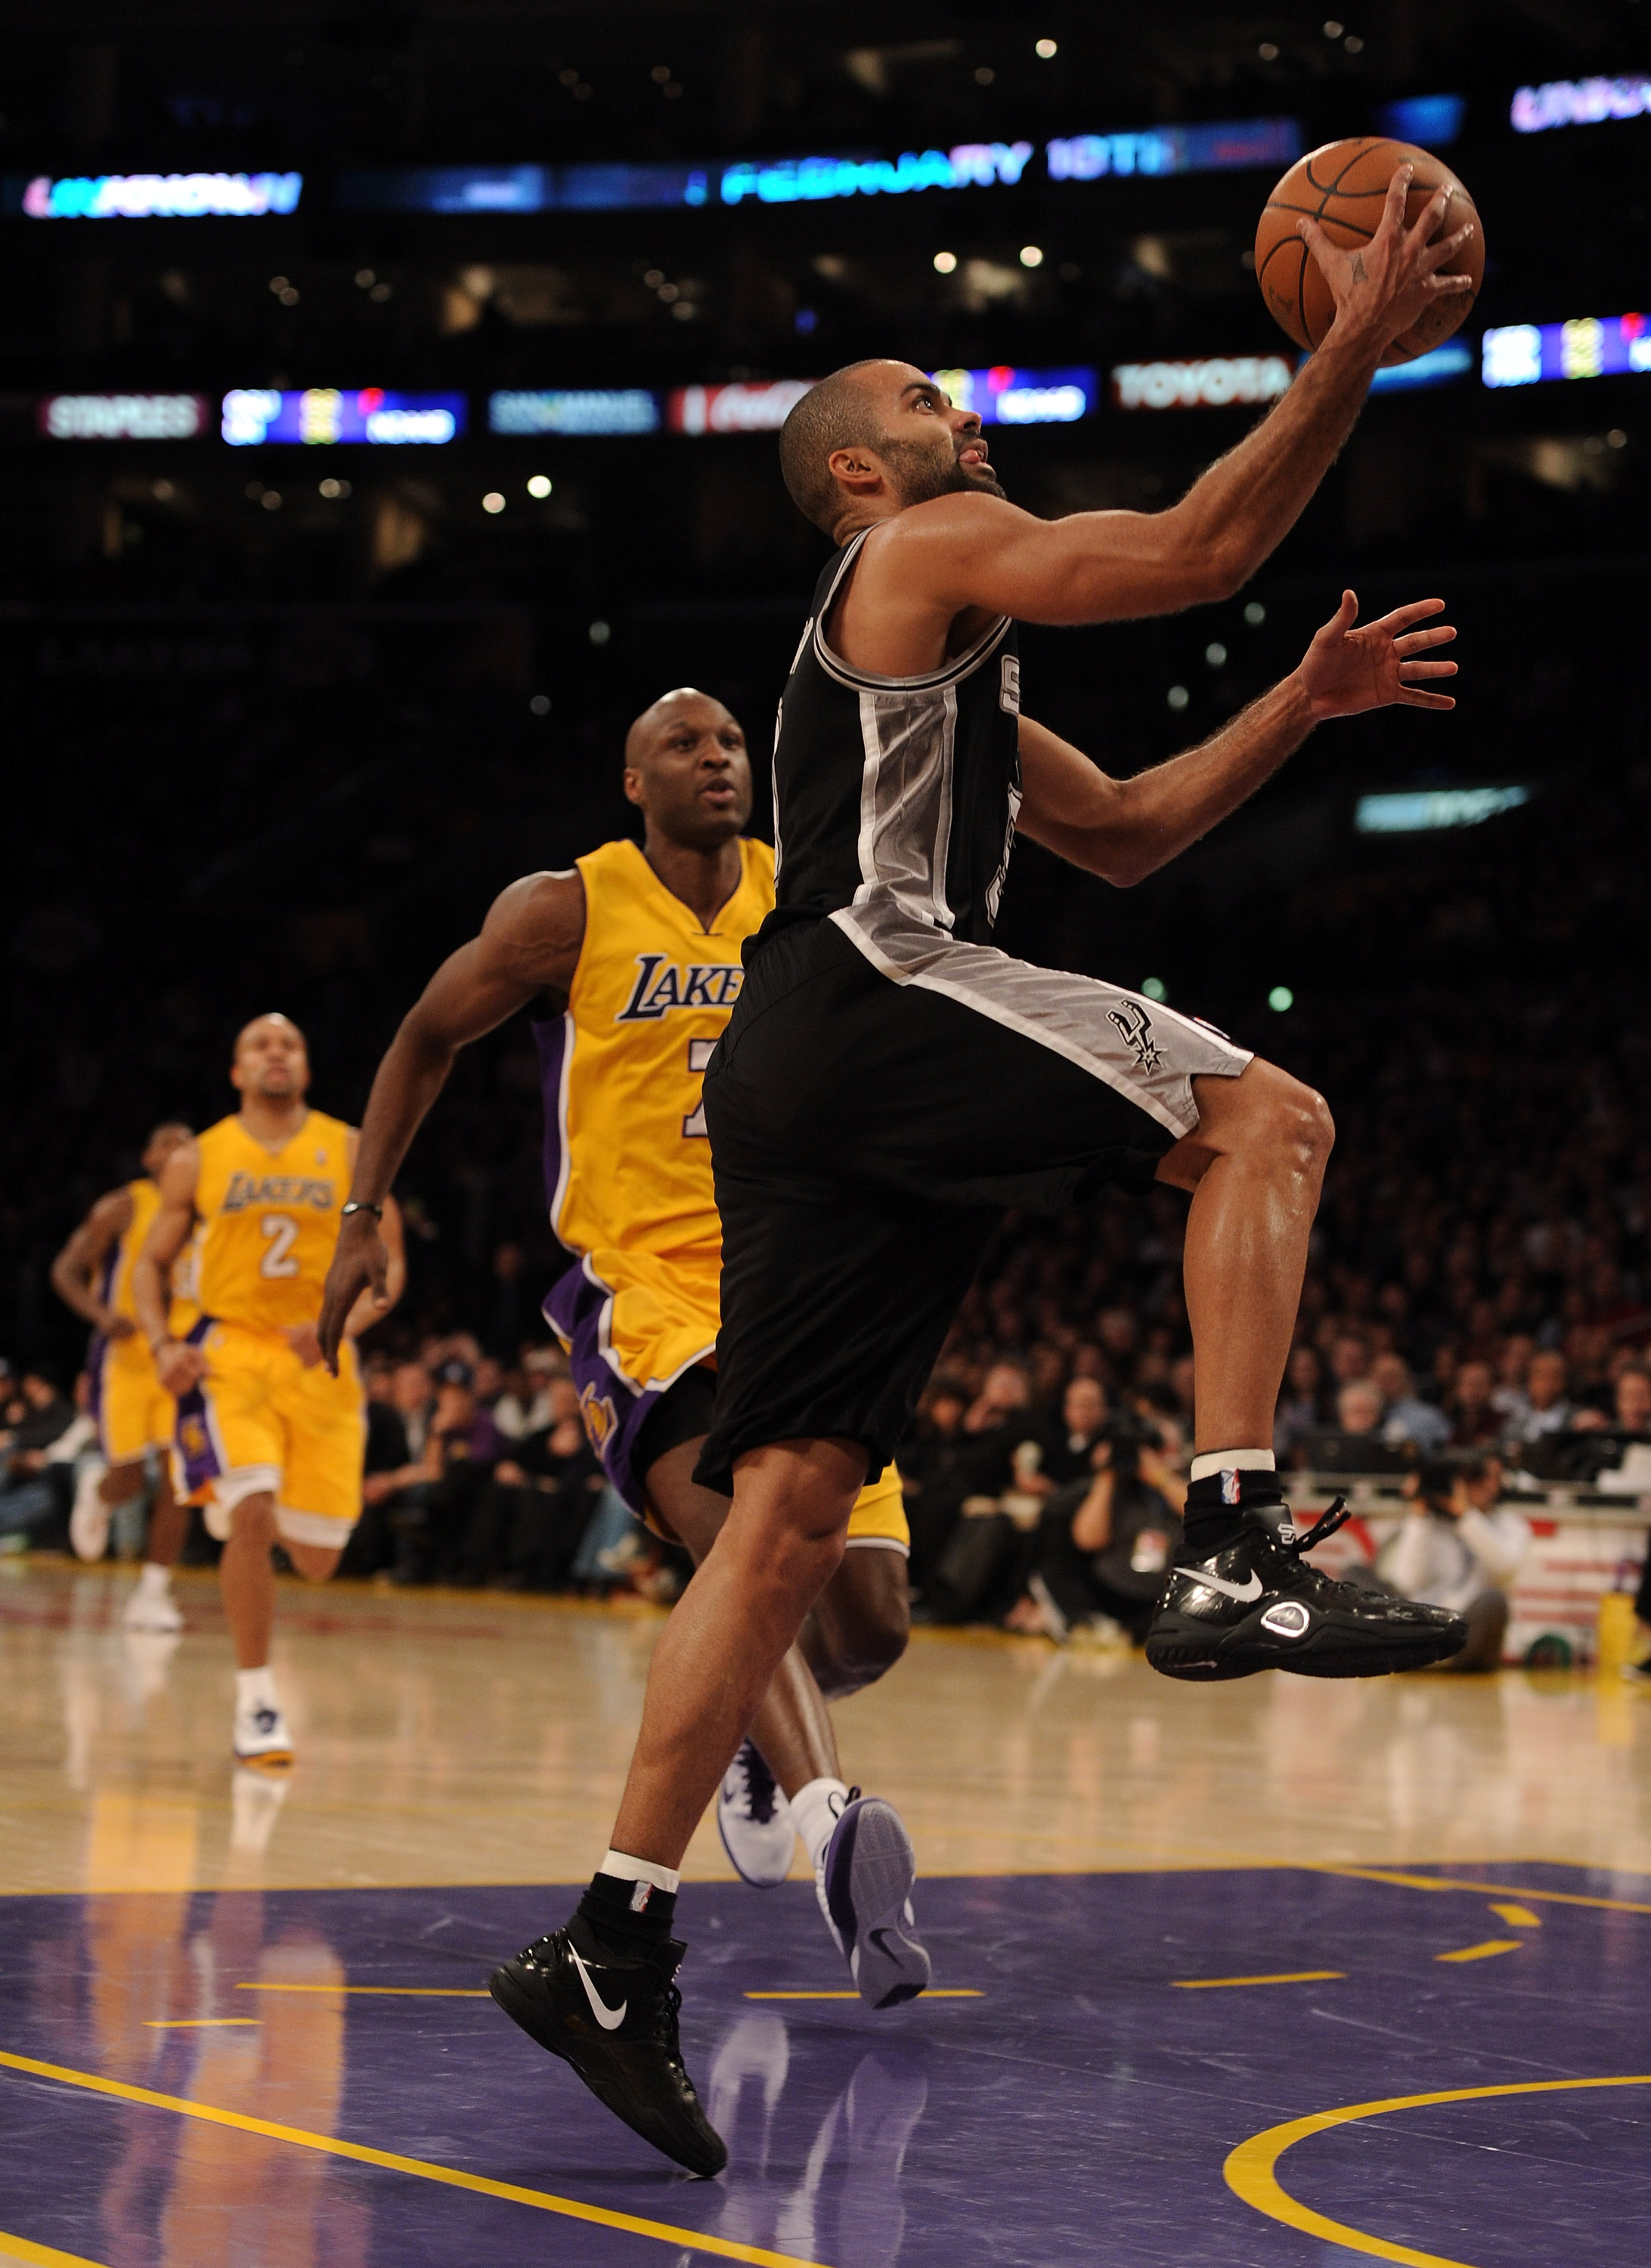 LOS ANGELES, CA - FEBRUARY 03:  Tony Parker #9 of the San Antonio Spurs scores a layup in front of Lamar Odom #7 of the Los Angeles Lakers at Staples Center on February 3, 2011 in Los Angeles, California.  NOTE TO USER: User expressly acknowledges and agr